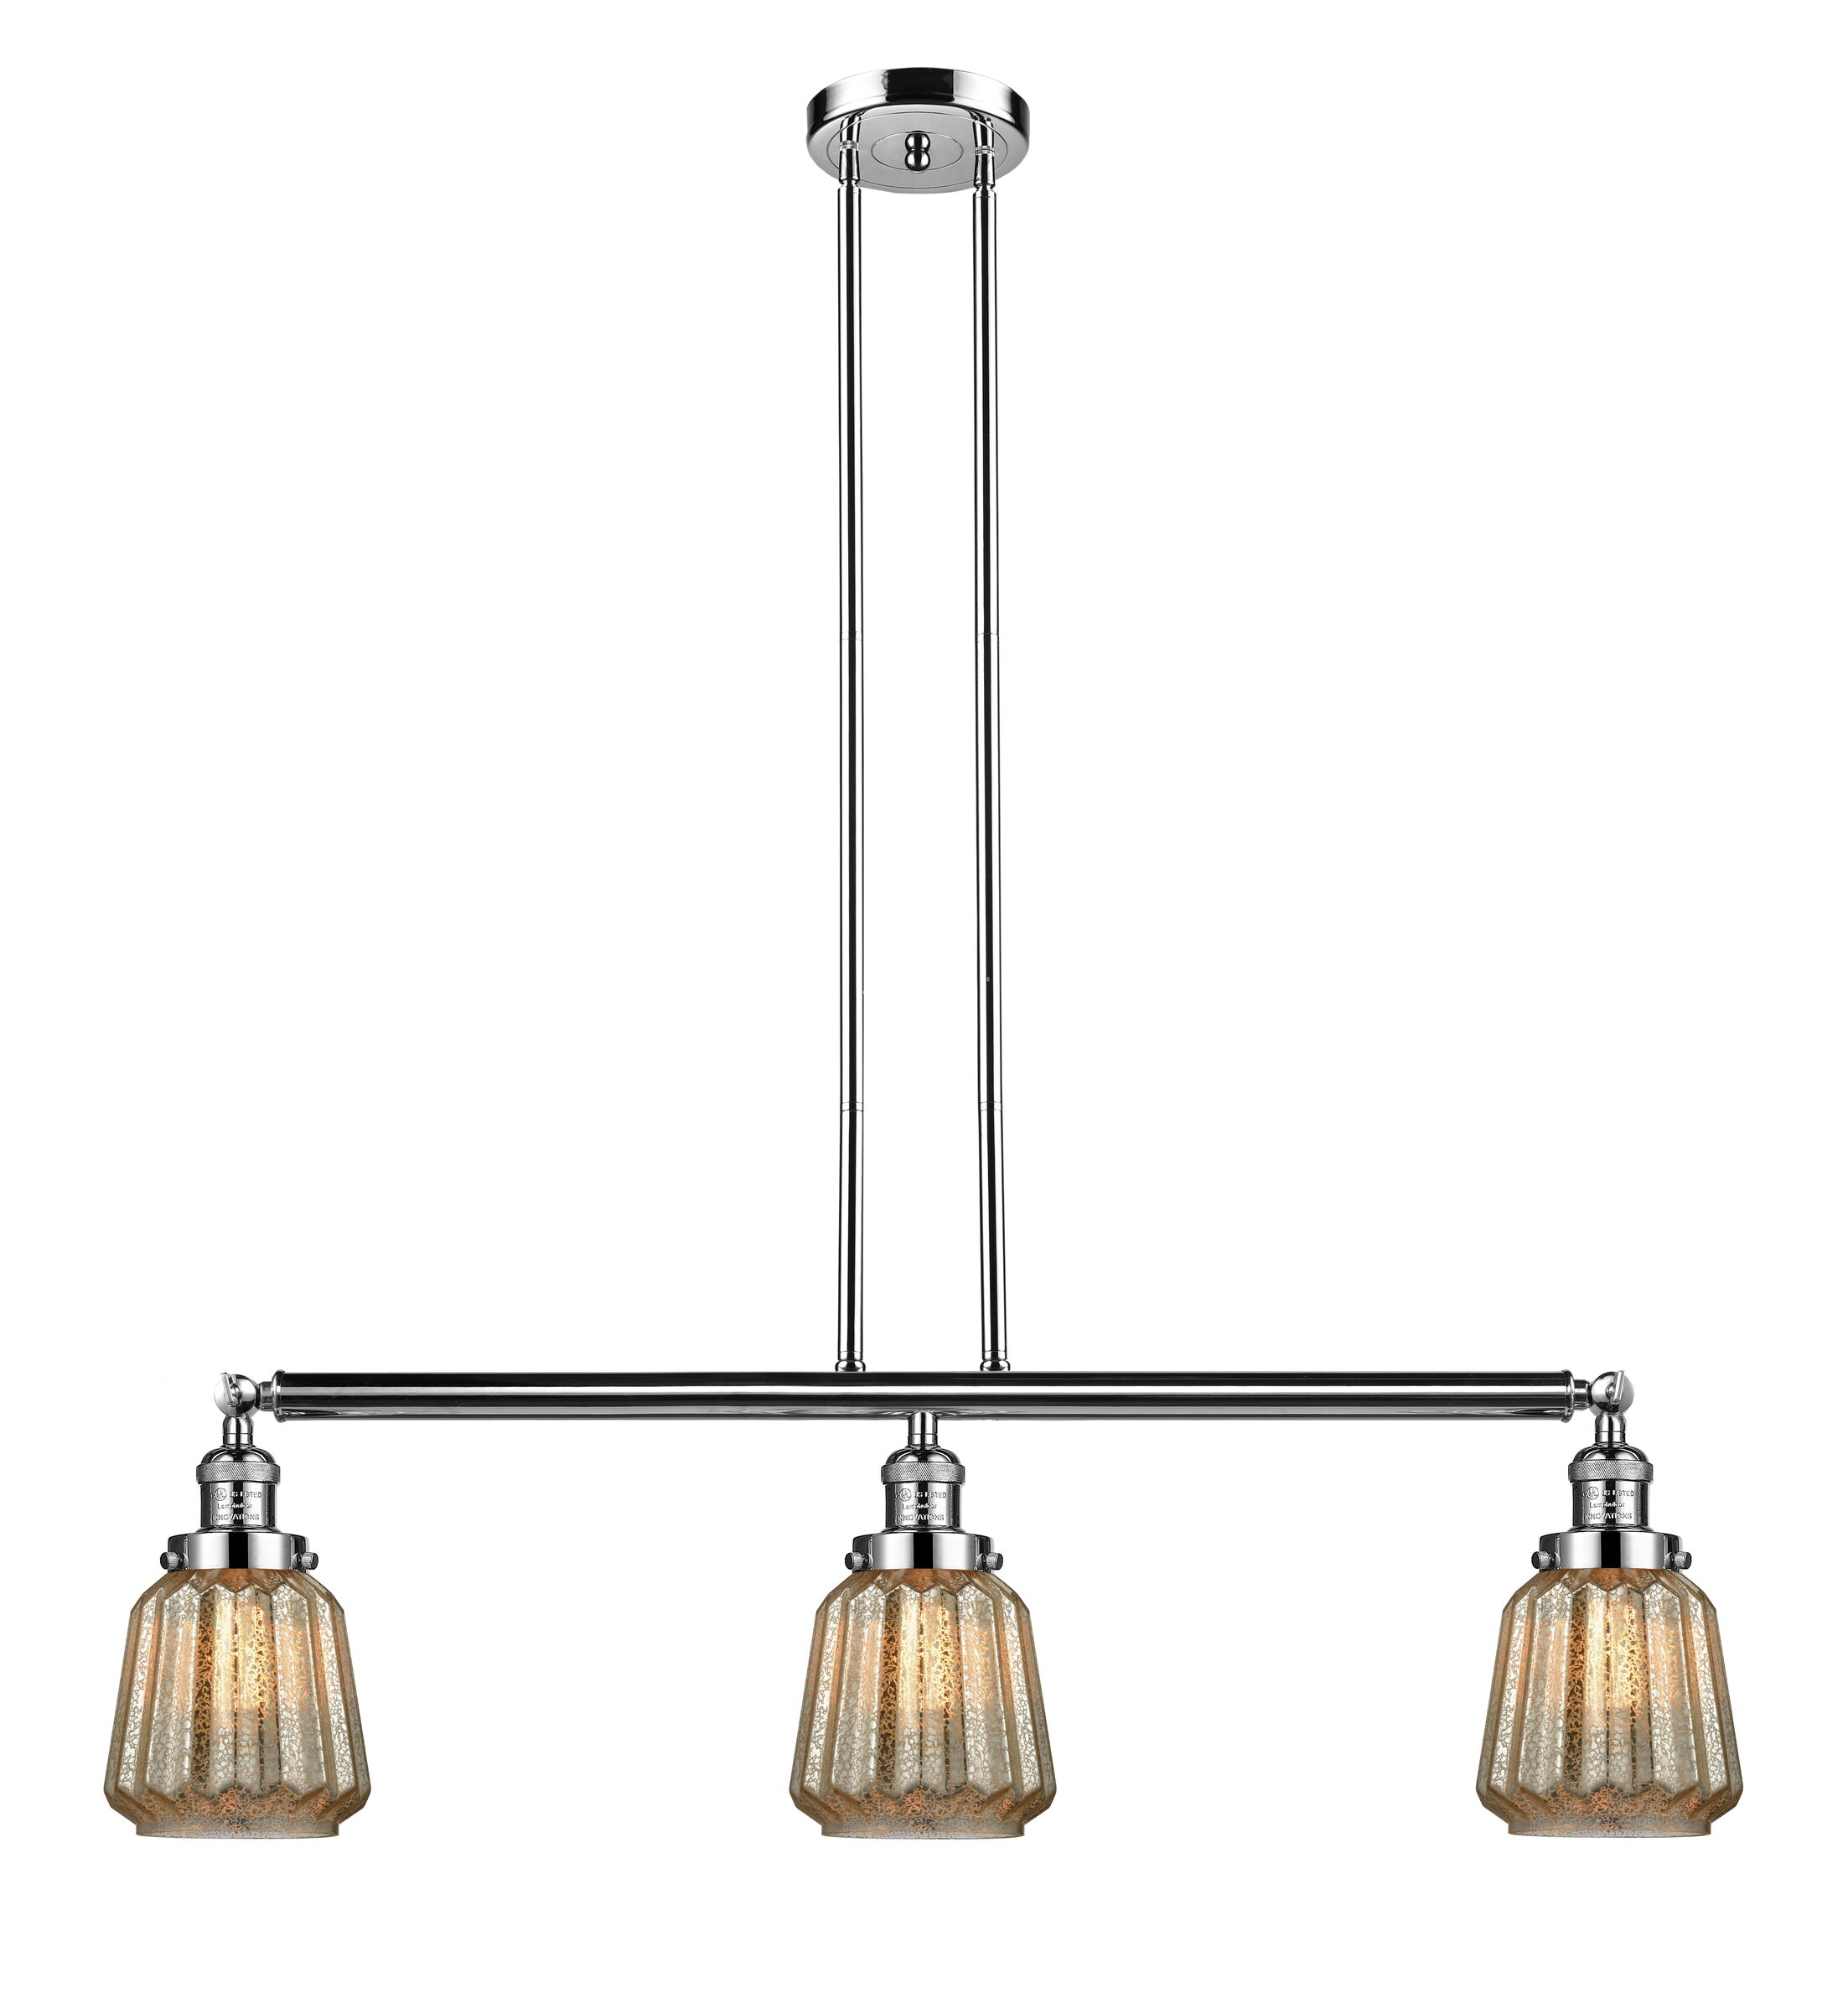 Vinson 3-Light Kitchen Island Pendant Bulb Type: Incandescent, Shade Color: Mercury Plated, Finish: Polished Nickel